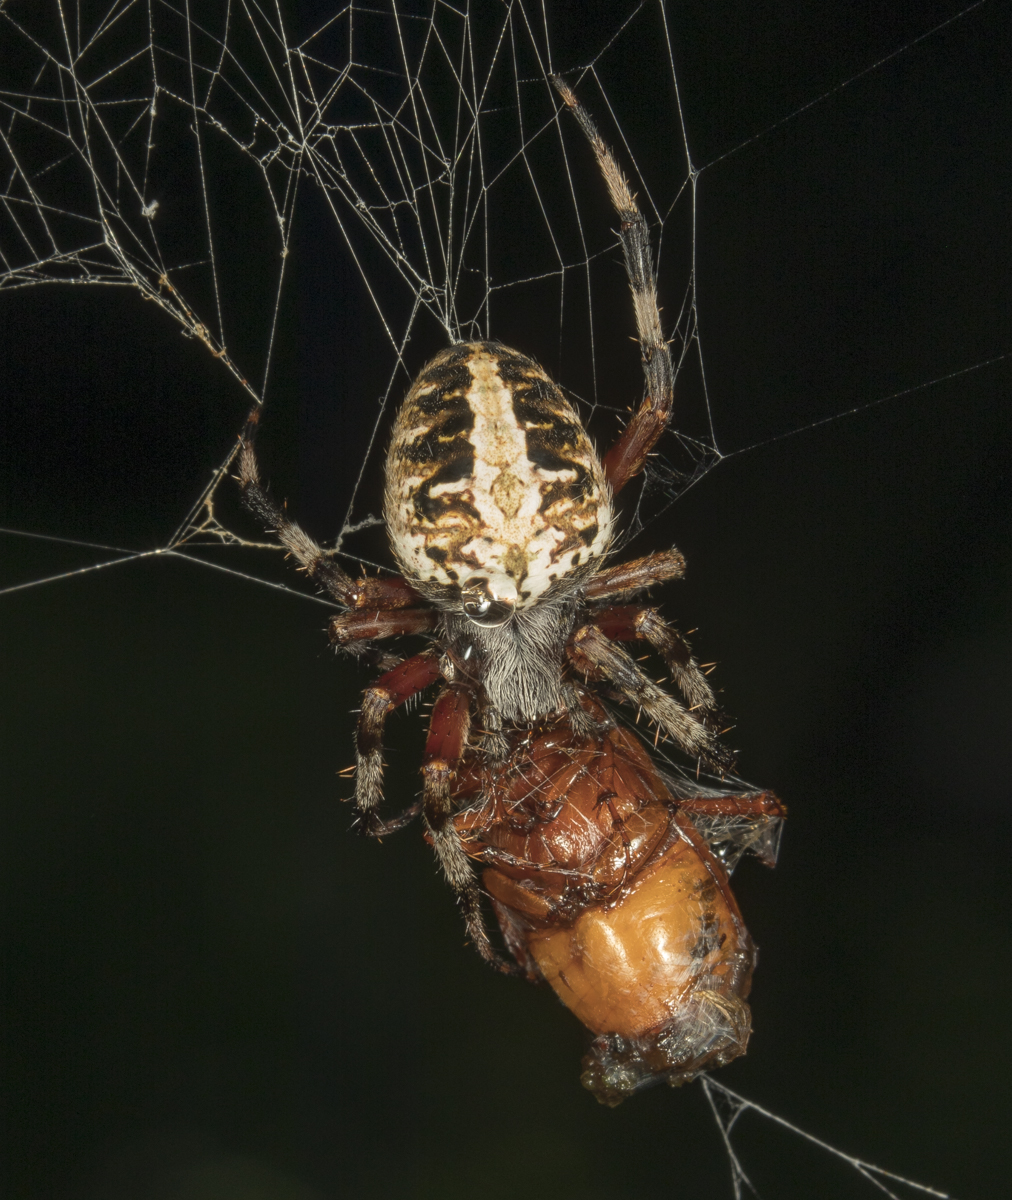 Red-femured spotted orbweaver, Neoscona domiciliorum 1